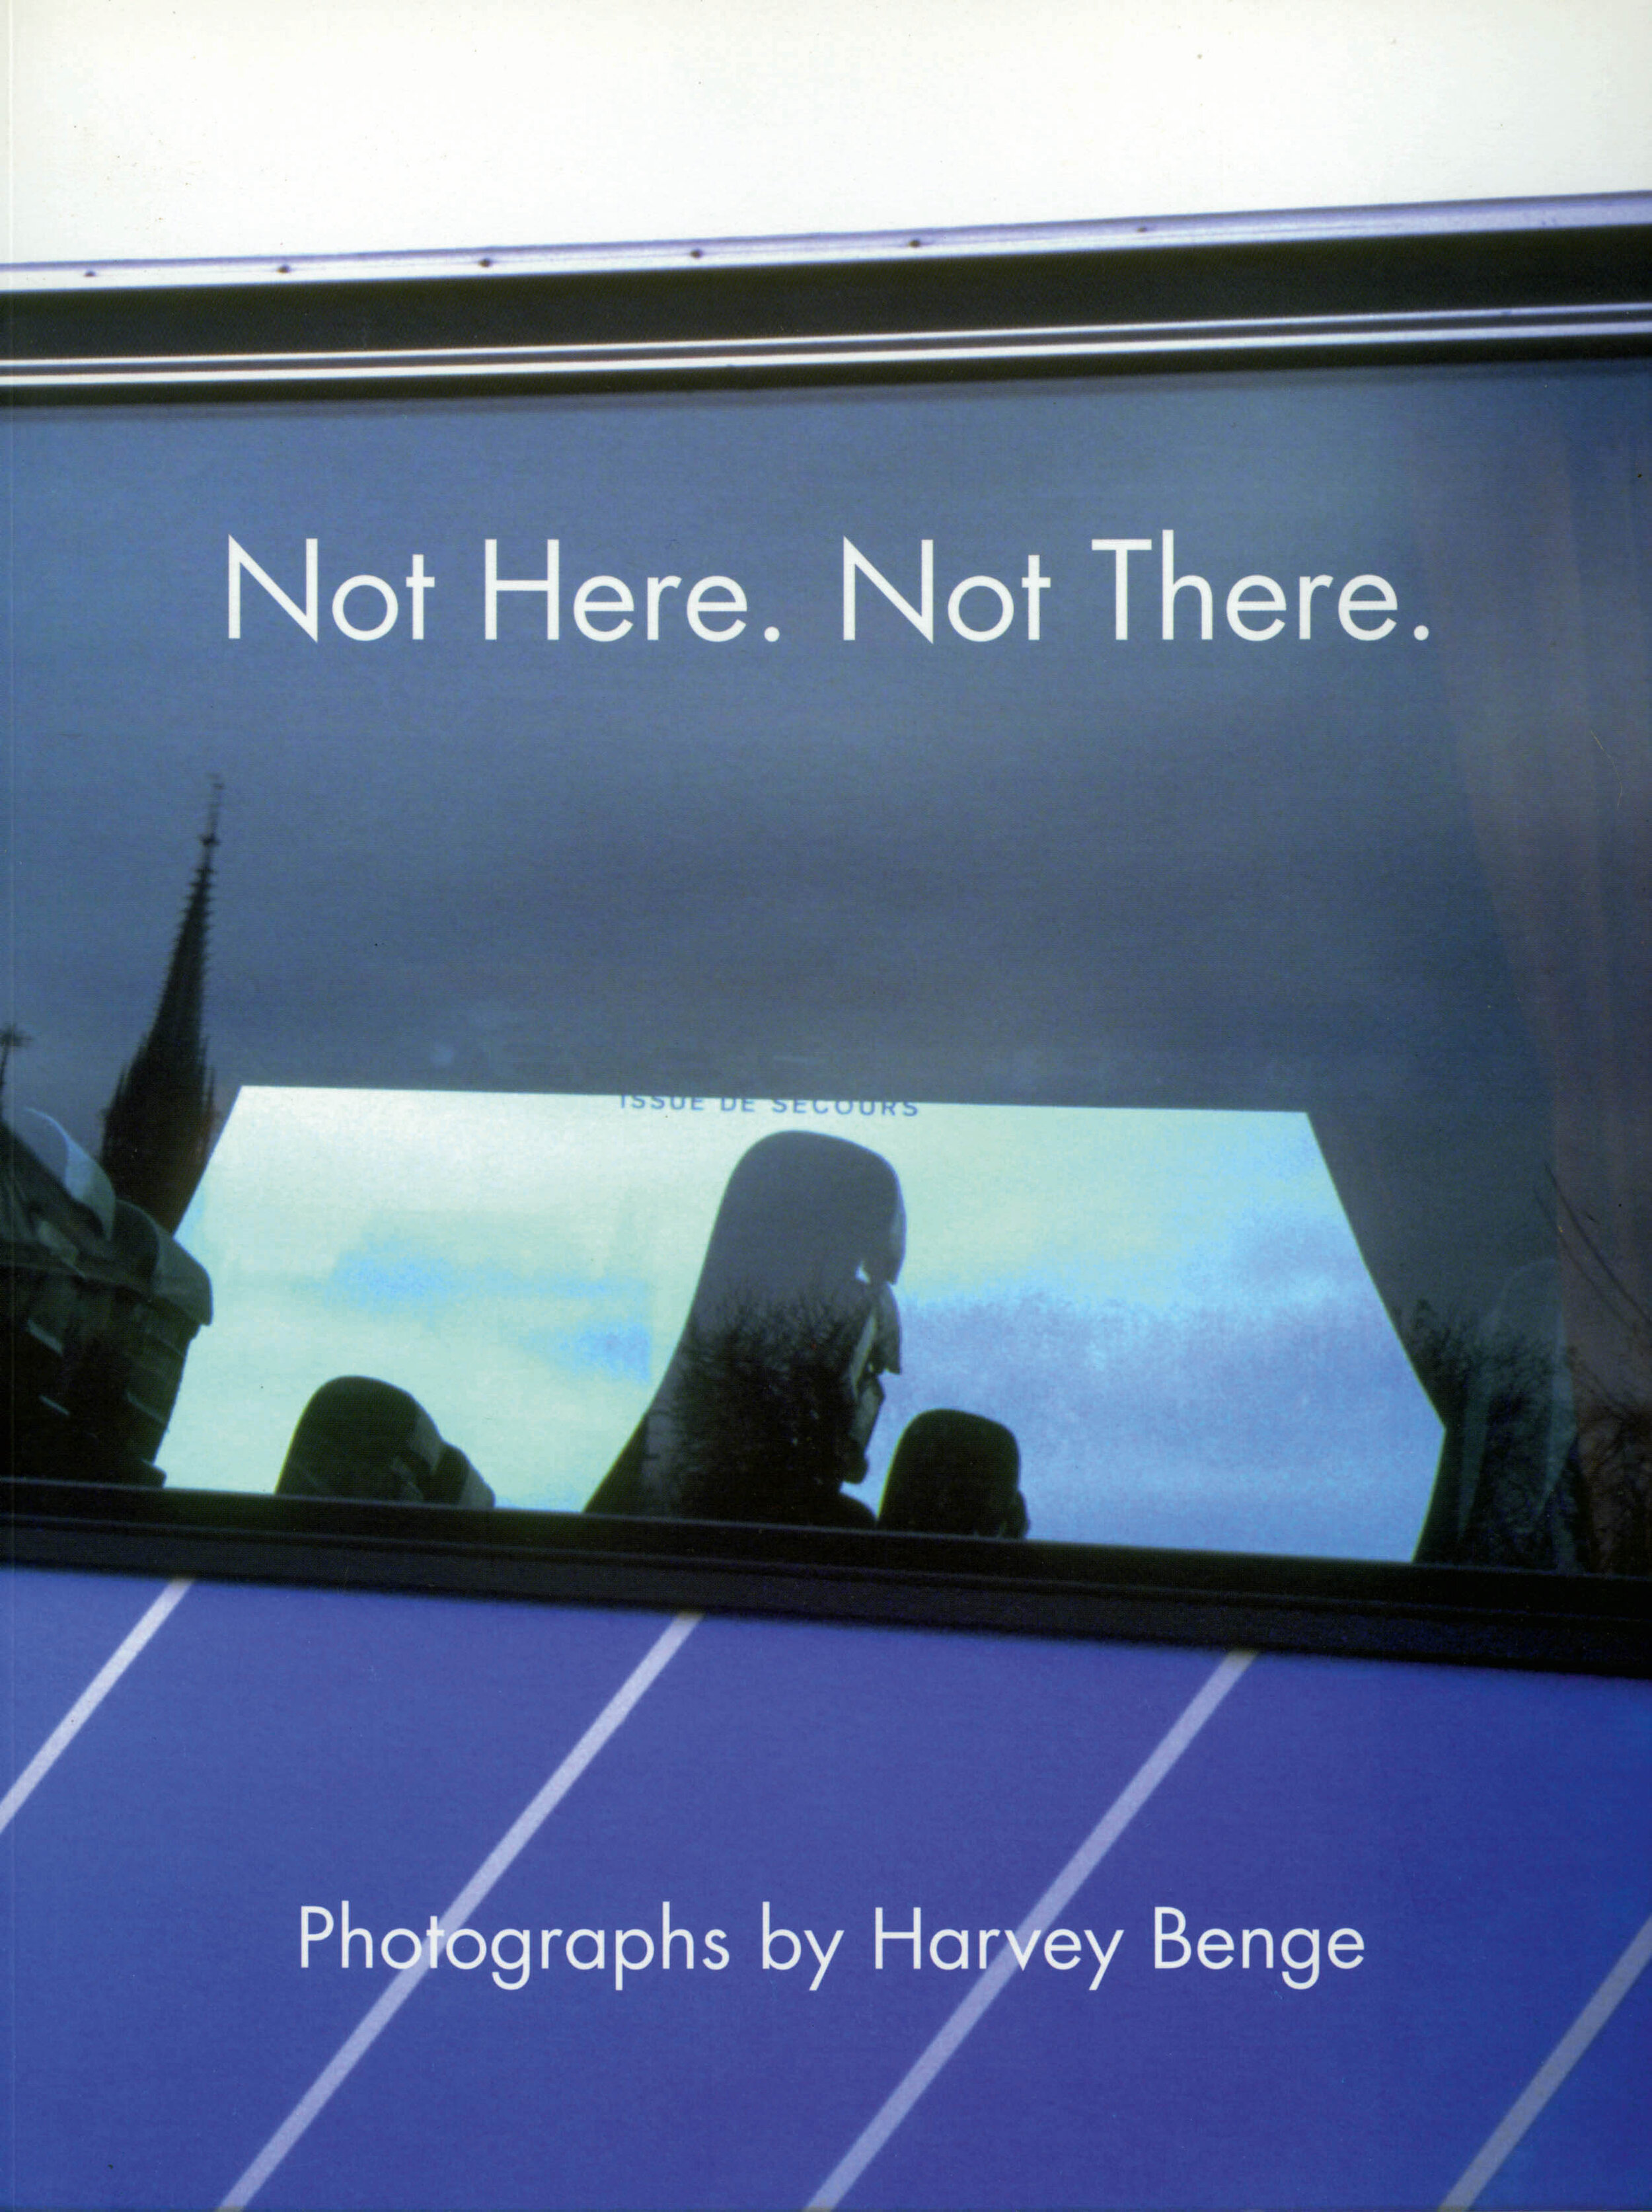 PhotoForum 62/63: Harvey Benge, Not Here. Not There. Published b